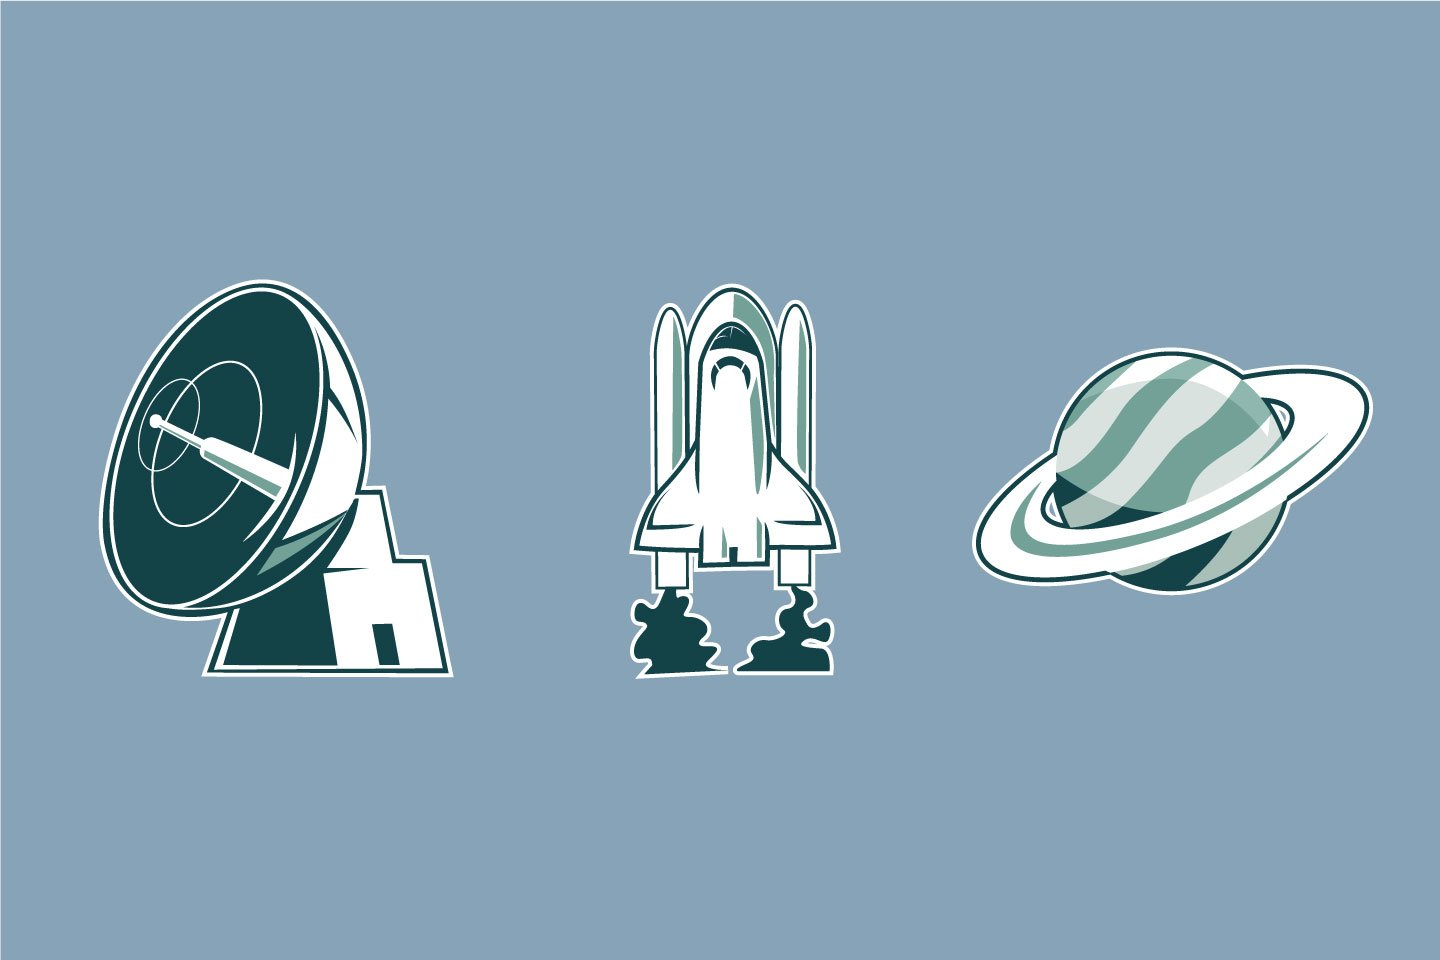 Space Sticker illustrations example image 1